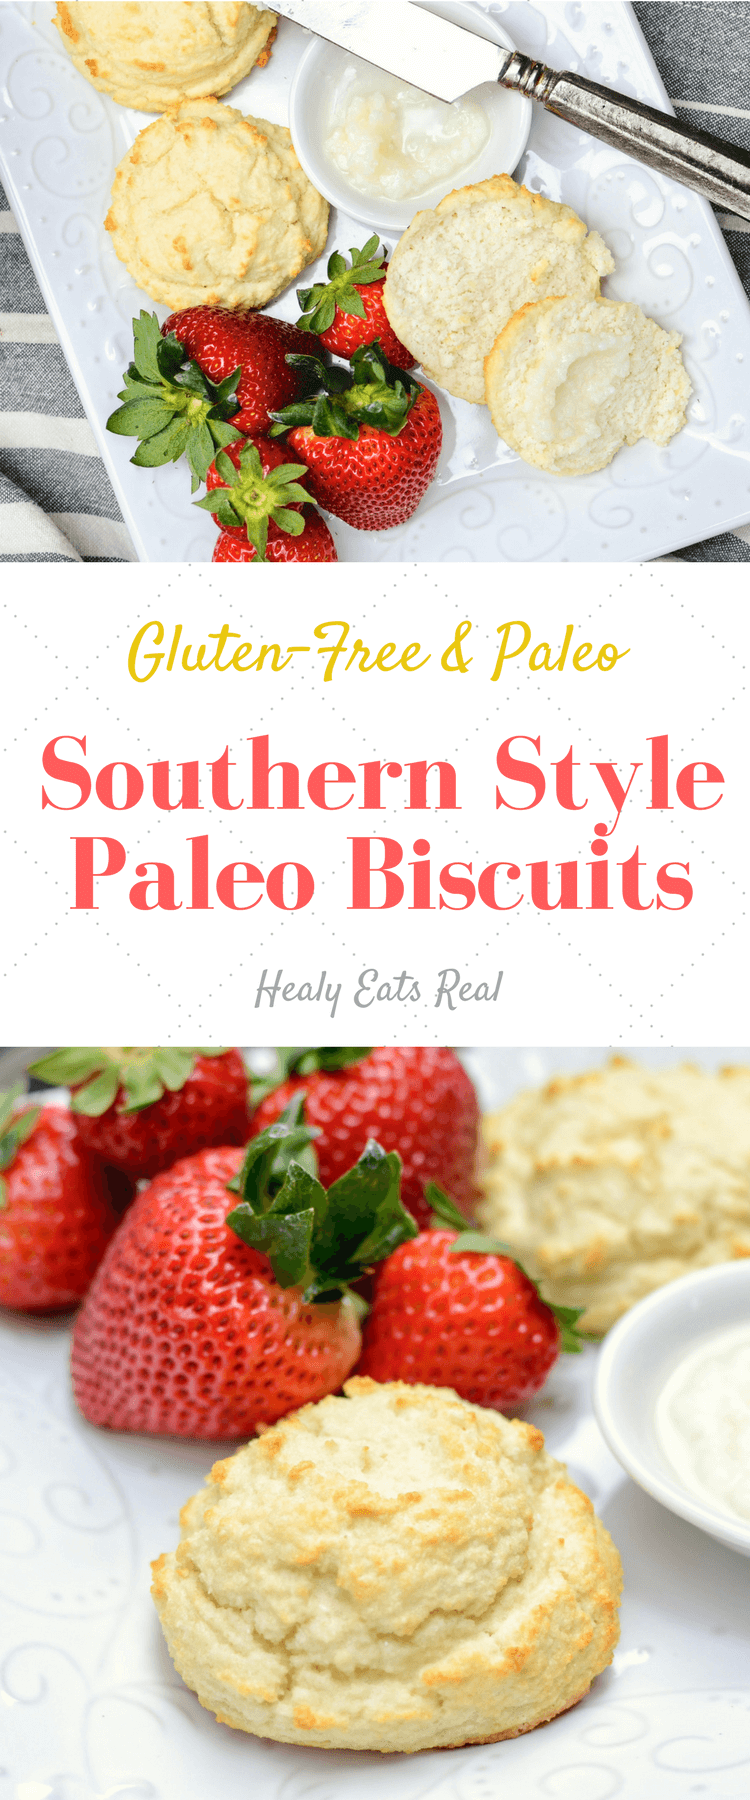 Southern Style Paleo Biscuits